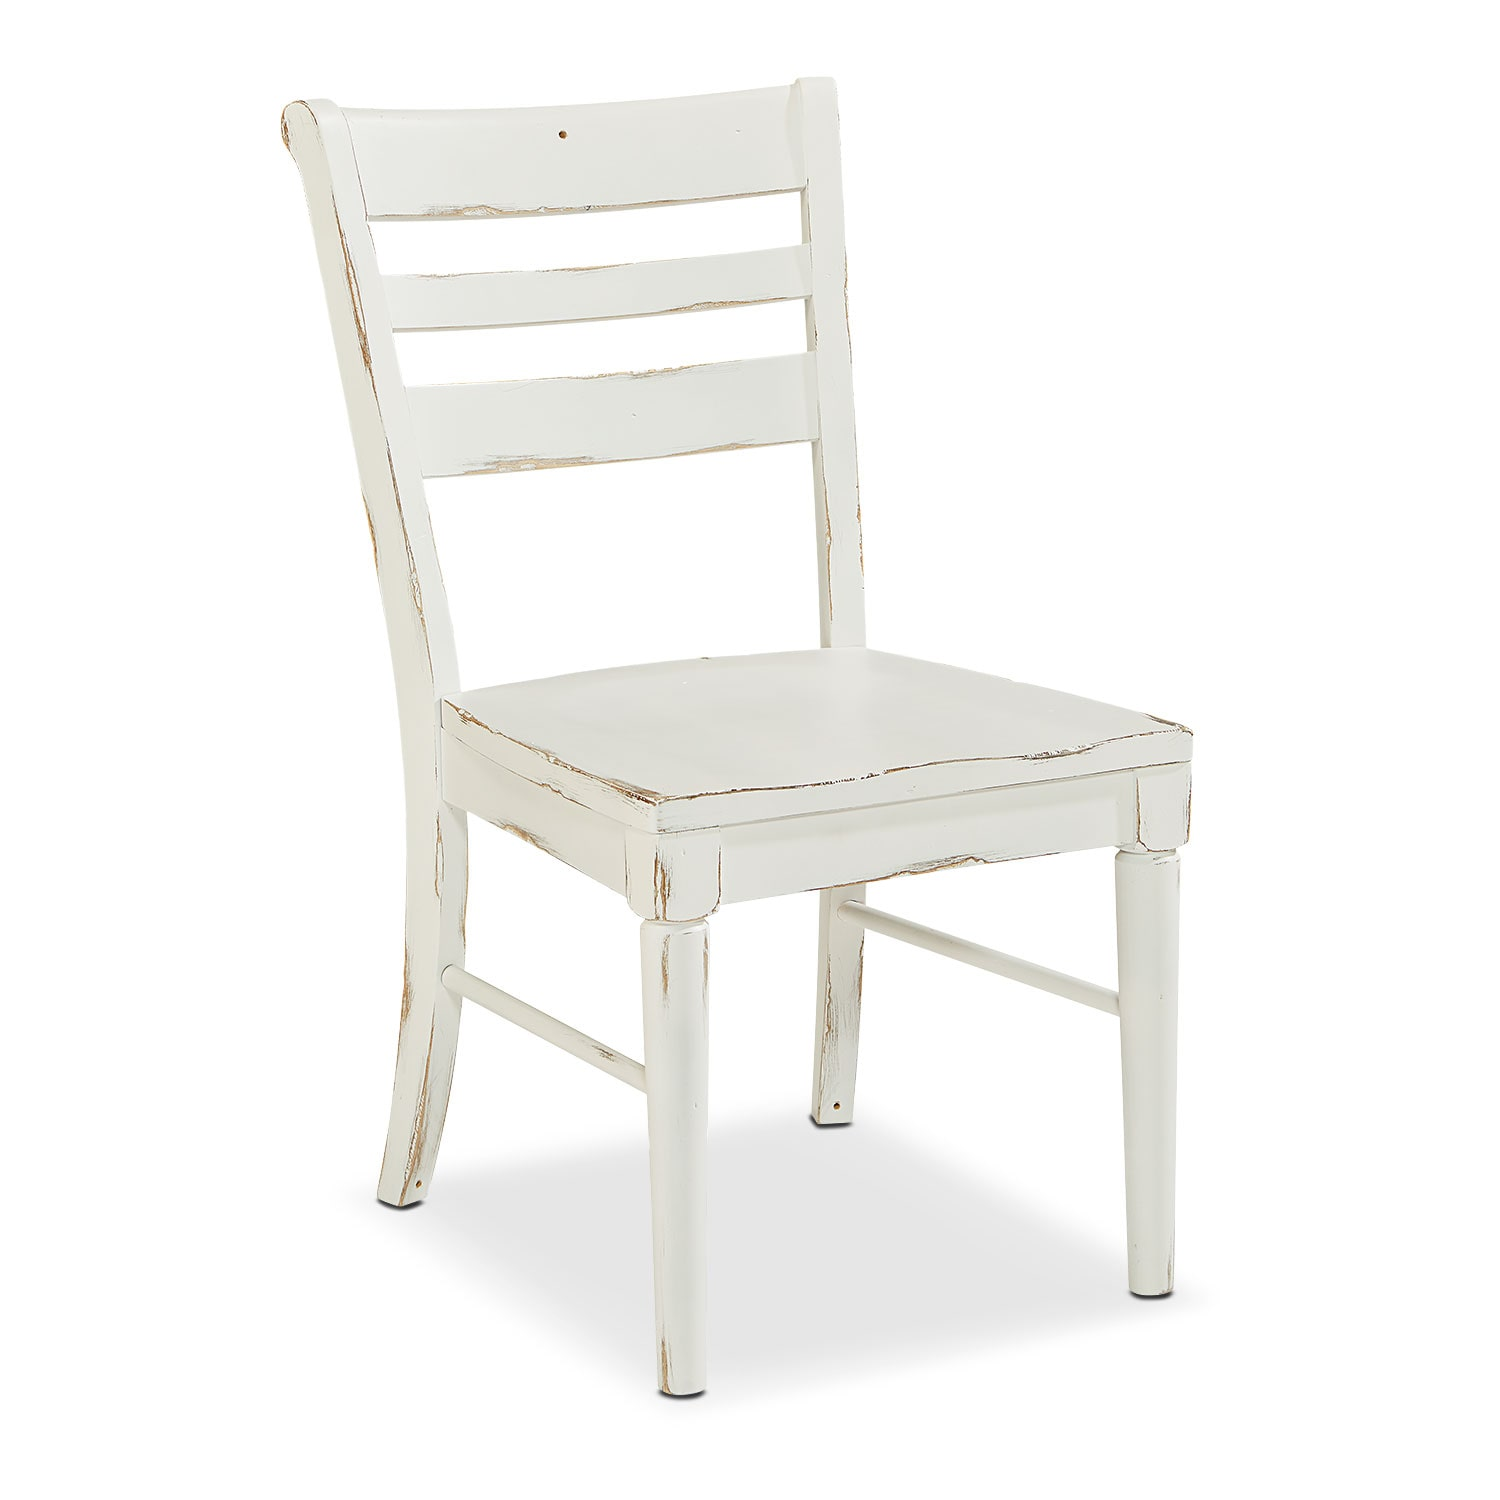 Dining Room Furniture - Kempton Slat Back Chair - White